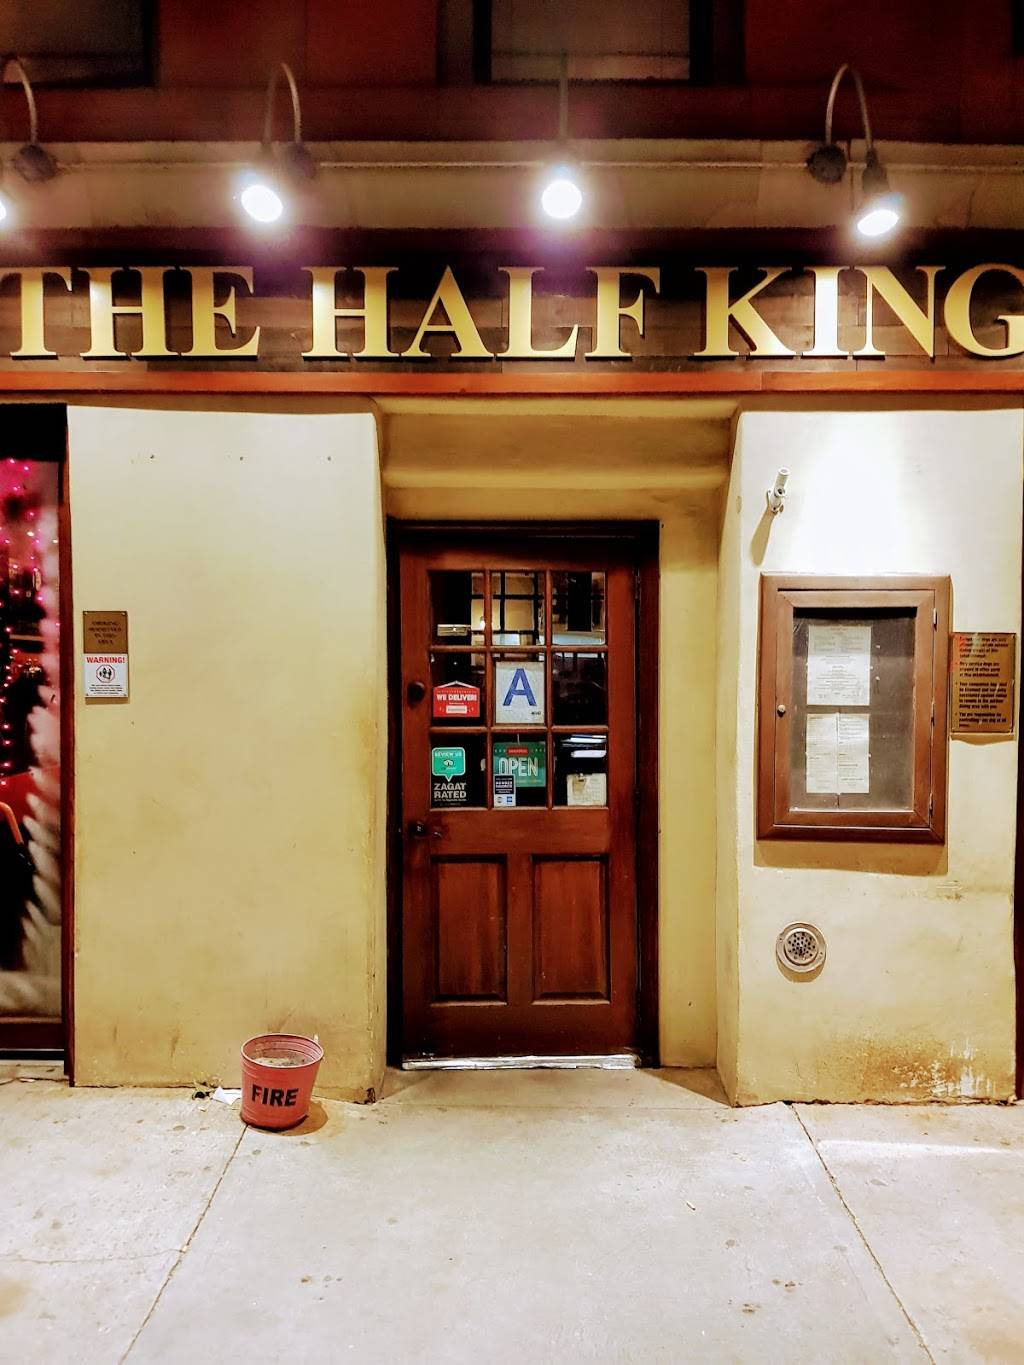 The Half King | restaurant | 505 W 23rd St A, New York, NY 10011, USA | 2124624300 OR +1 212-462-4300